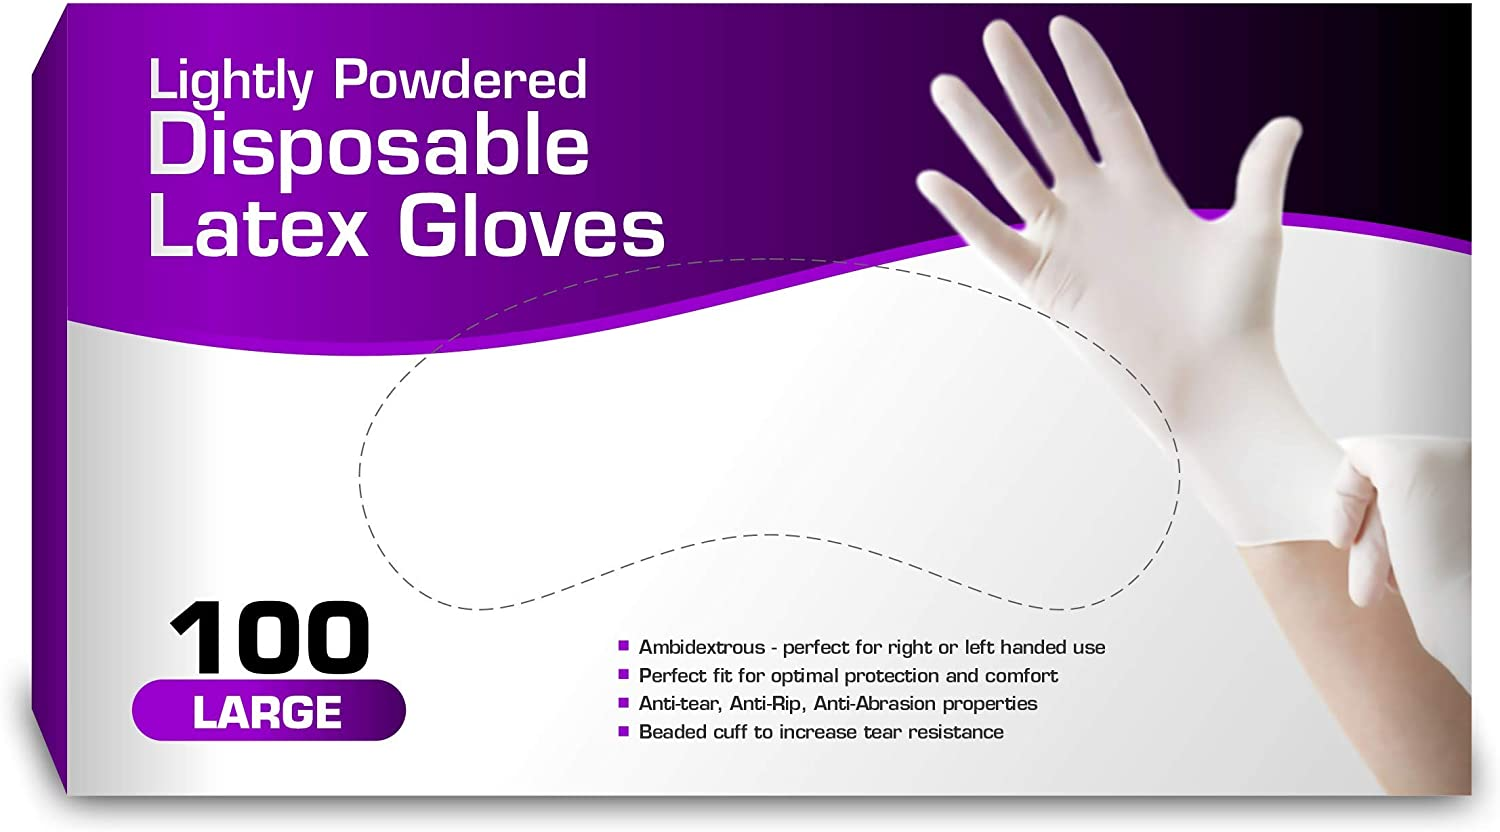 Disposable Latex Gloves, Lightly Powdered, Comfortable Fit 100 per Box (Large)